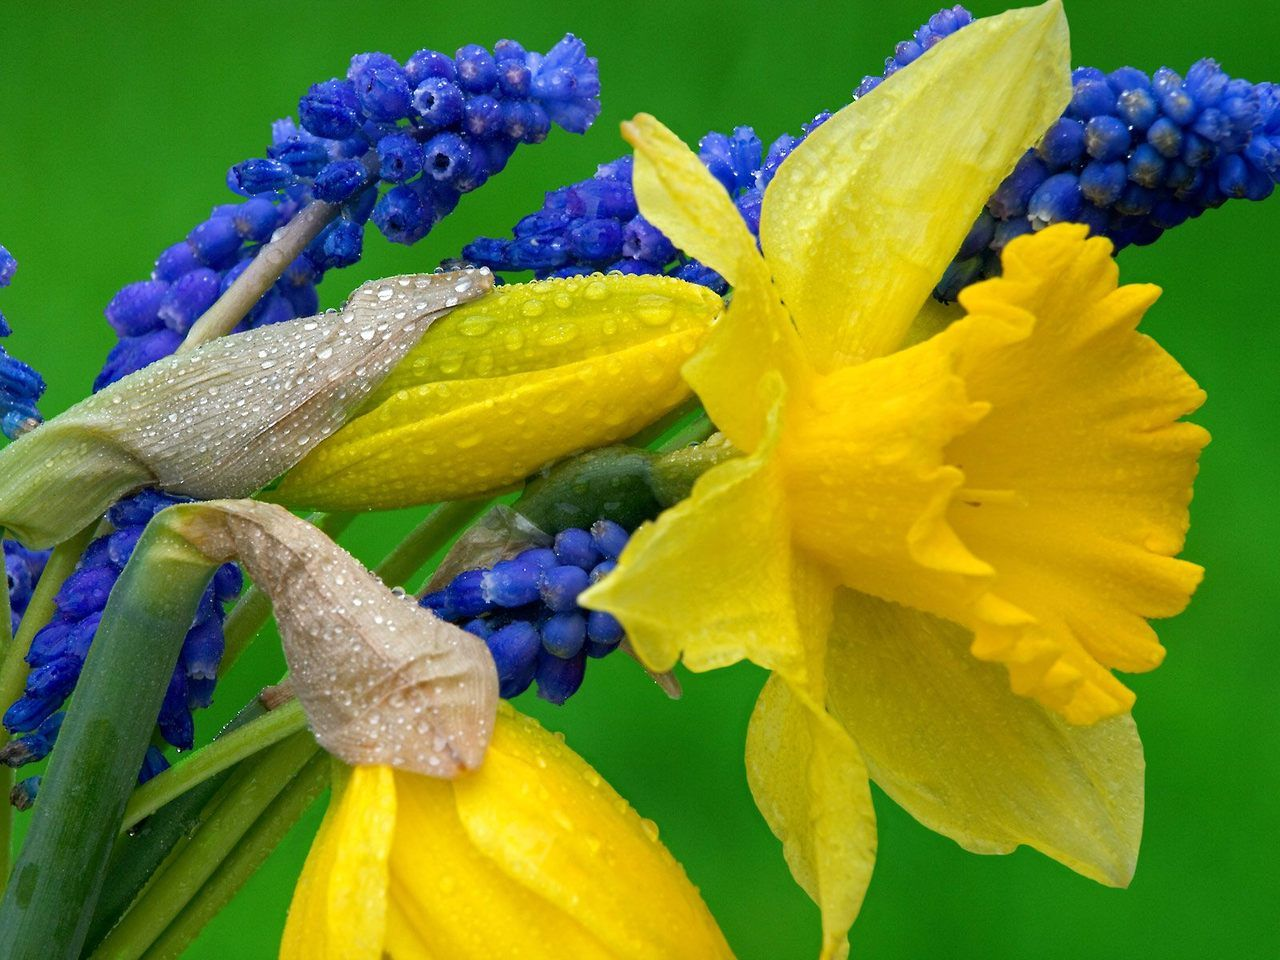 The Narcissus Aka The Daffodil Is A Poisonous Spring Flowering Plant That Can Induce Vomiting Fatal Convulsions And Cont Planting Bulbs Fall Plants Daffodils